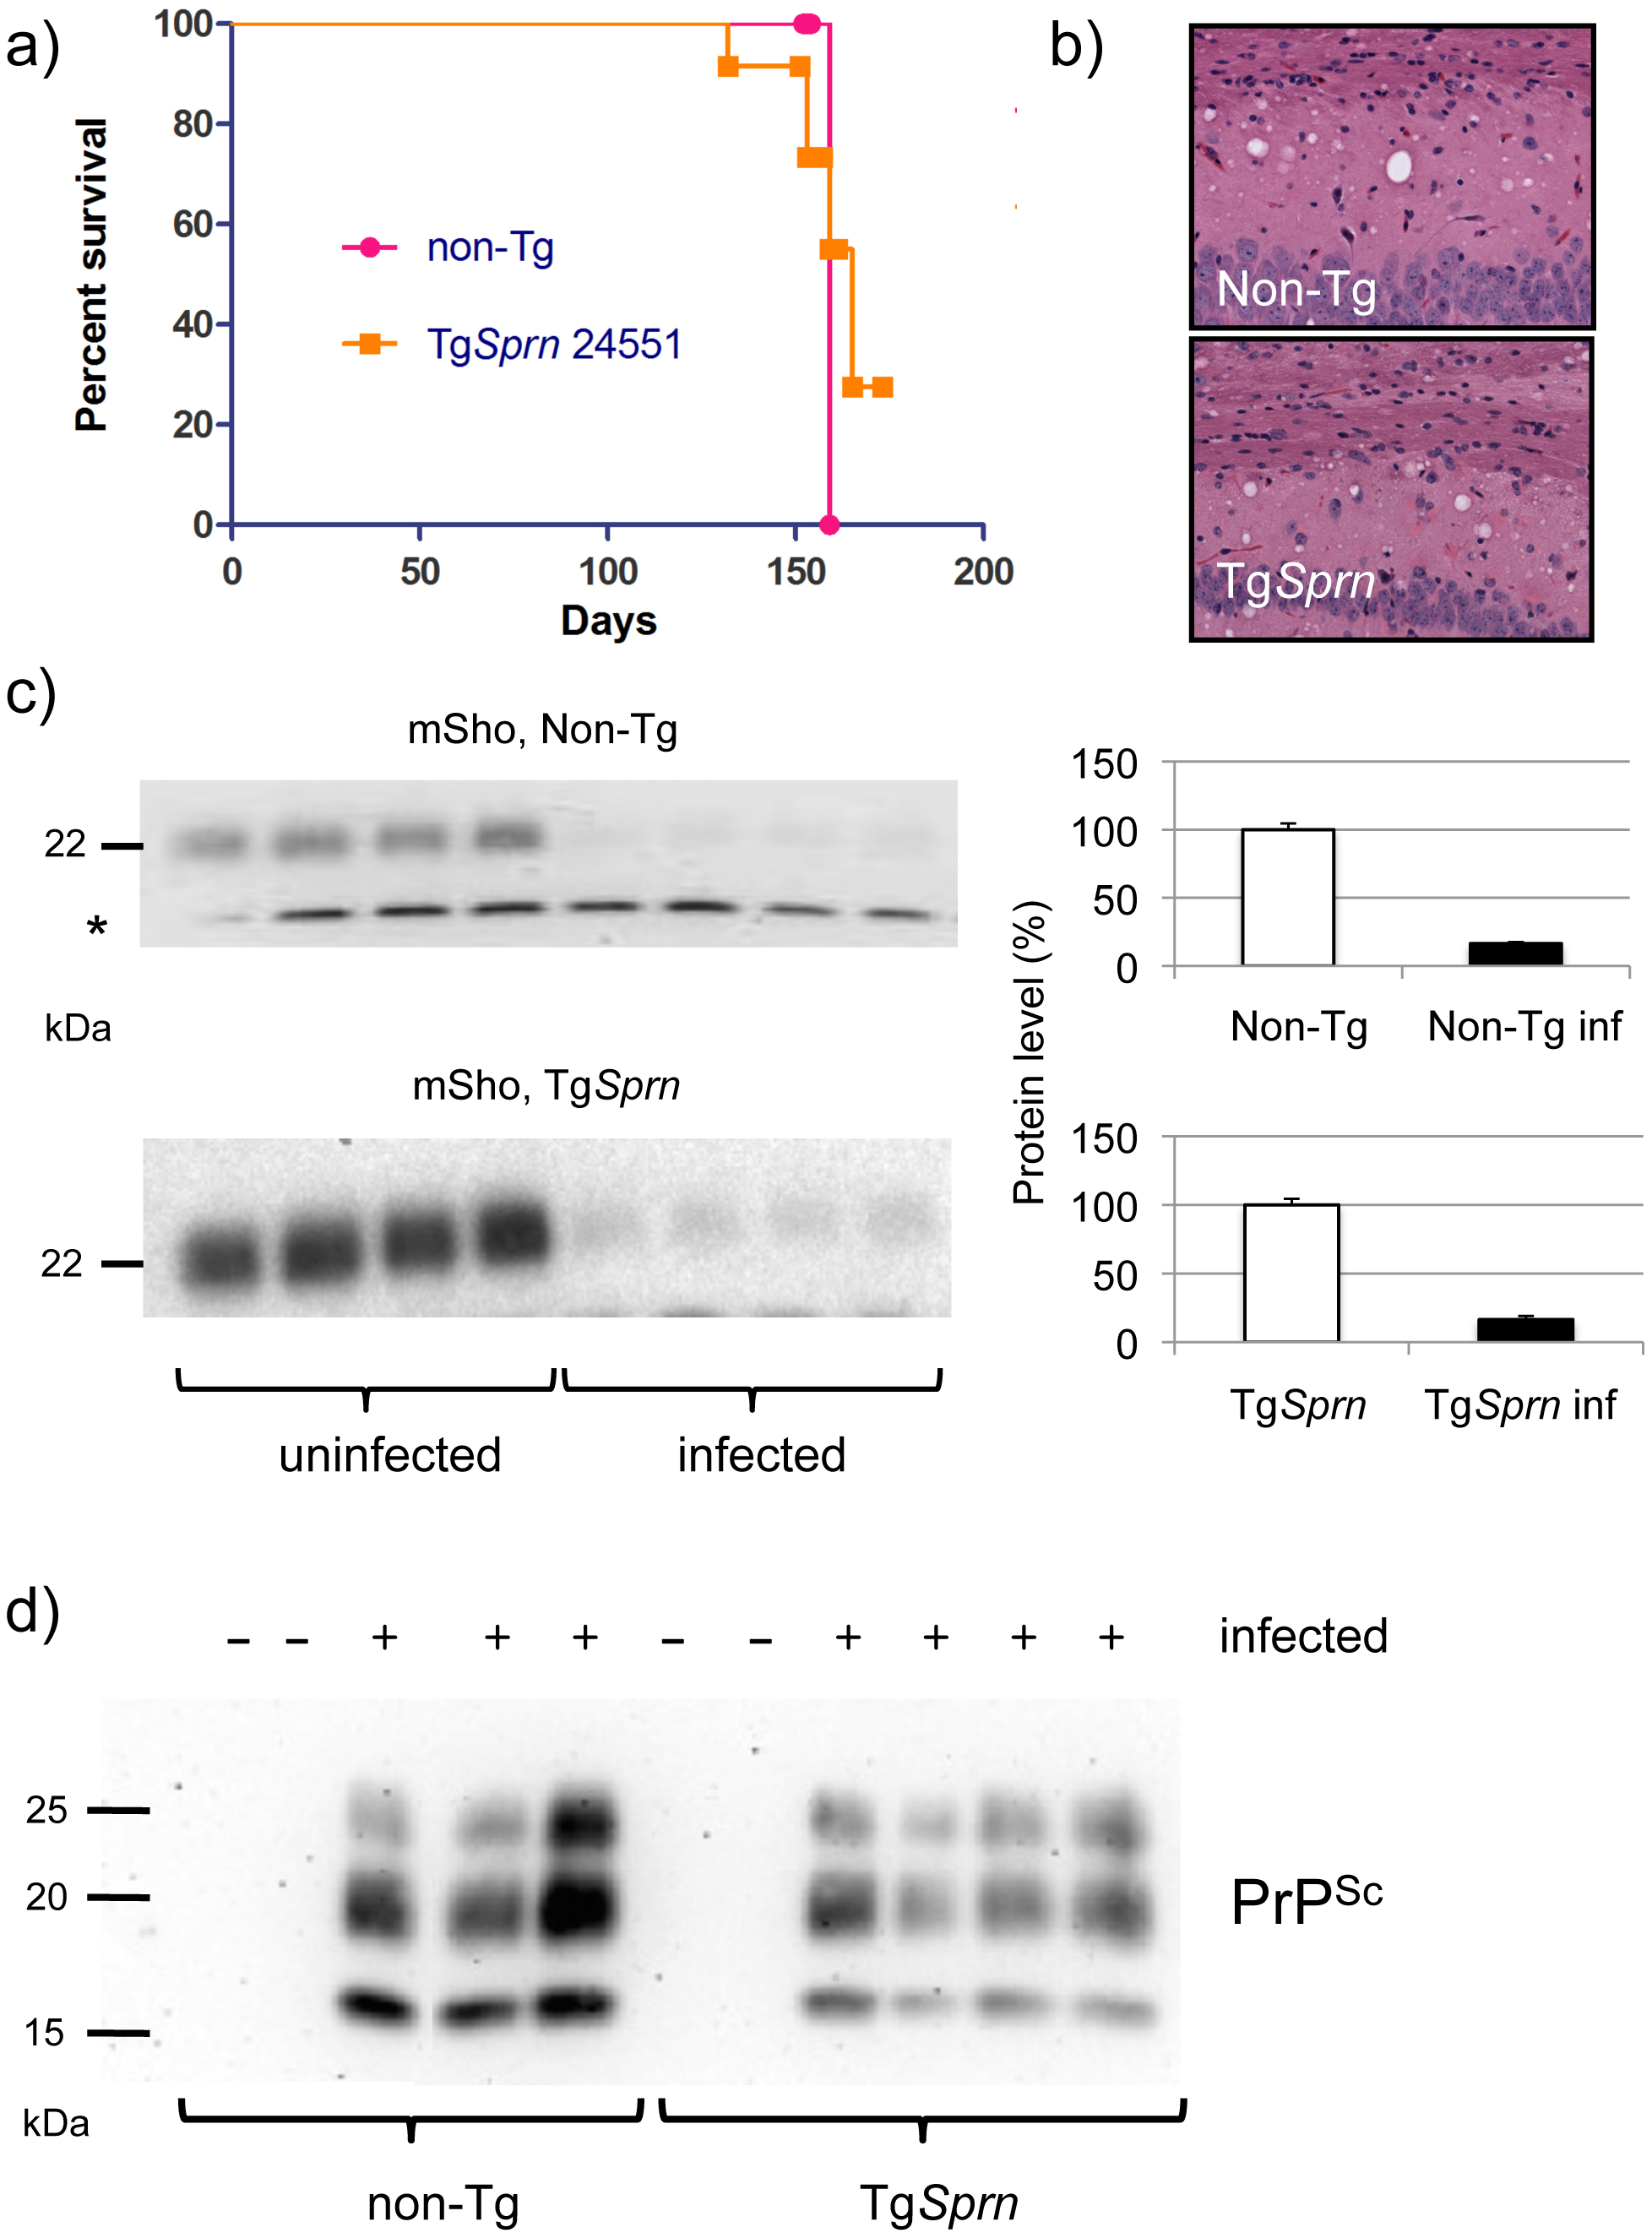 Prion infection assessed in Tg<i>Sprn</i> mice.